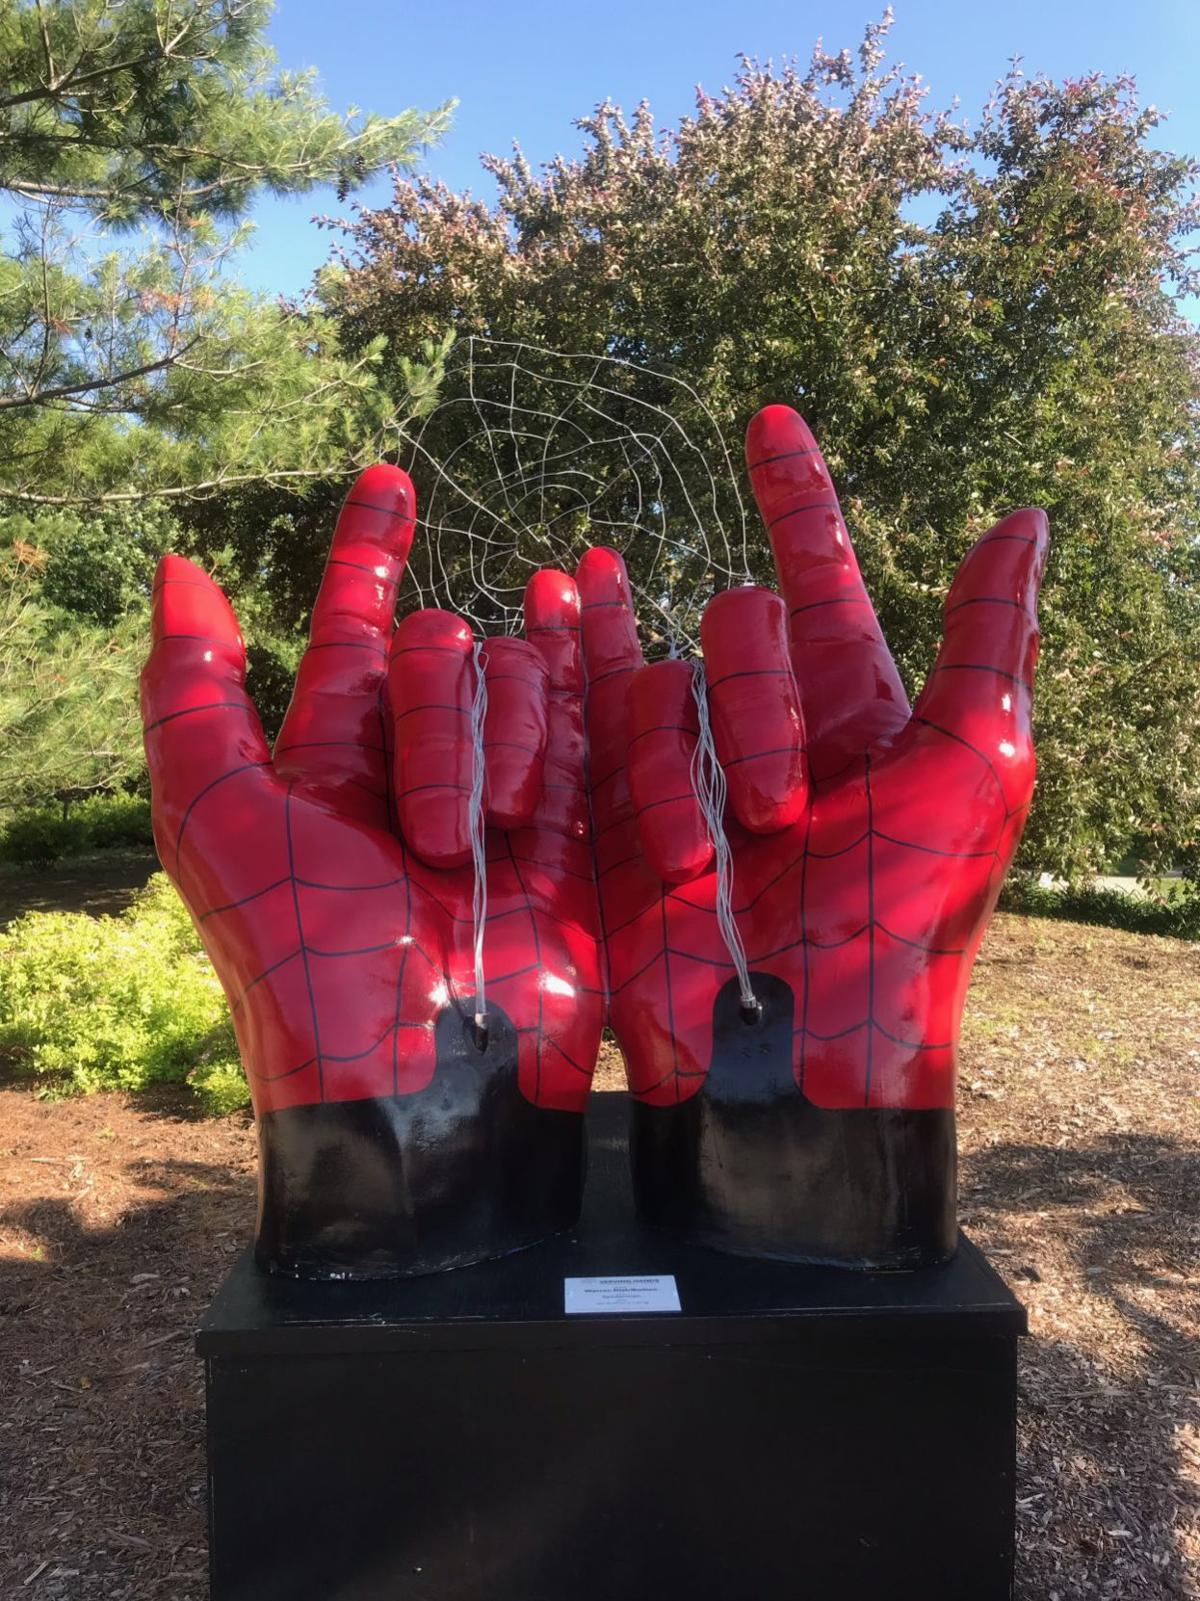 Are spideman's hands doing the work of the devil?